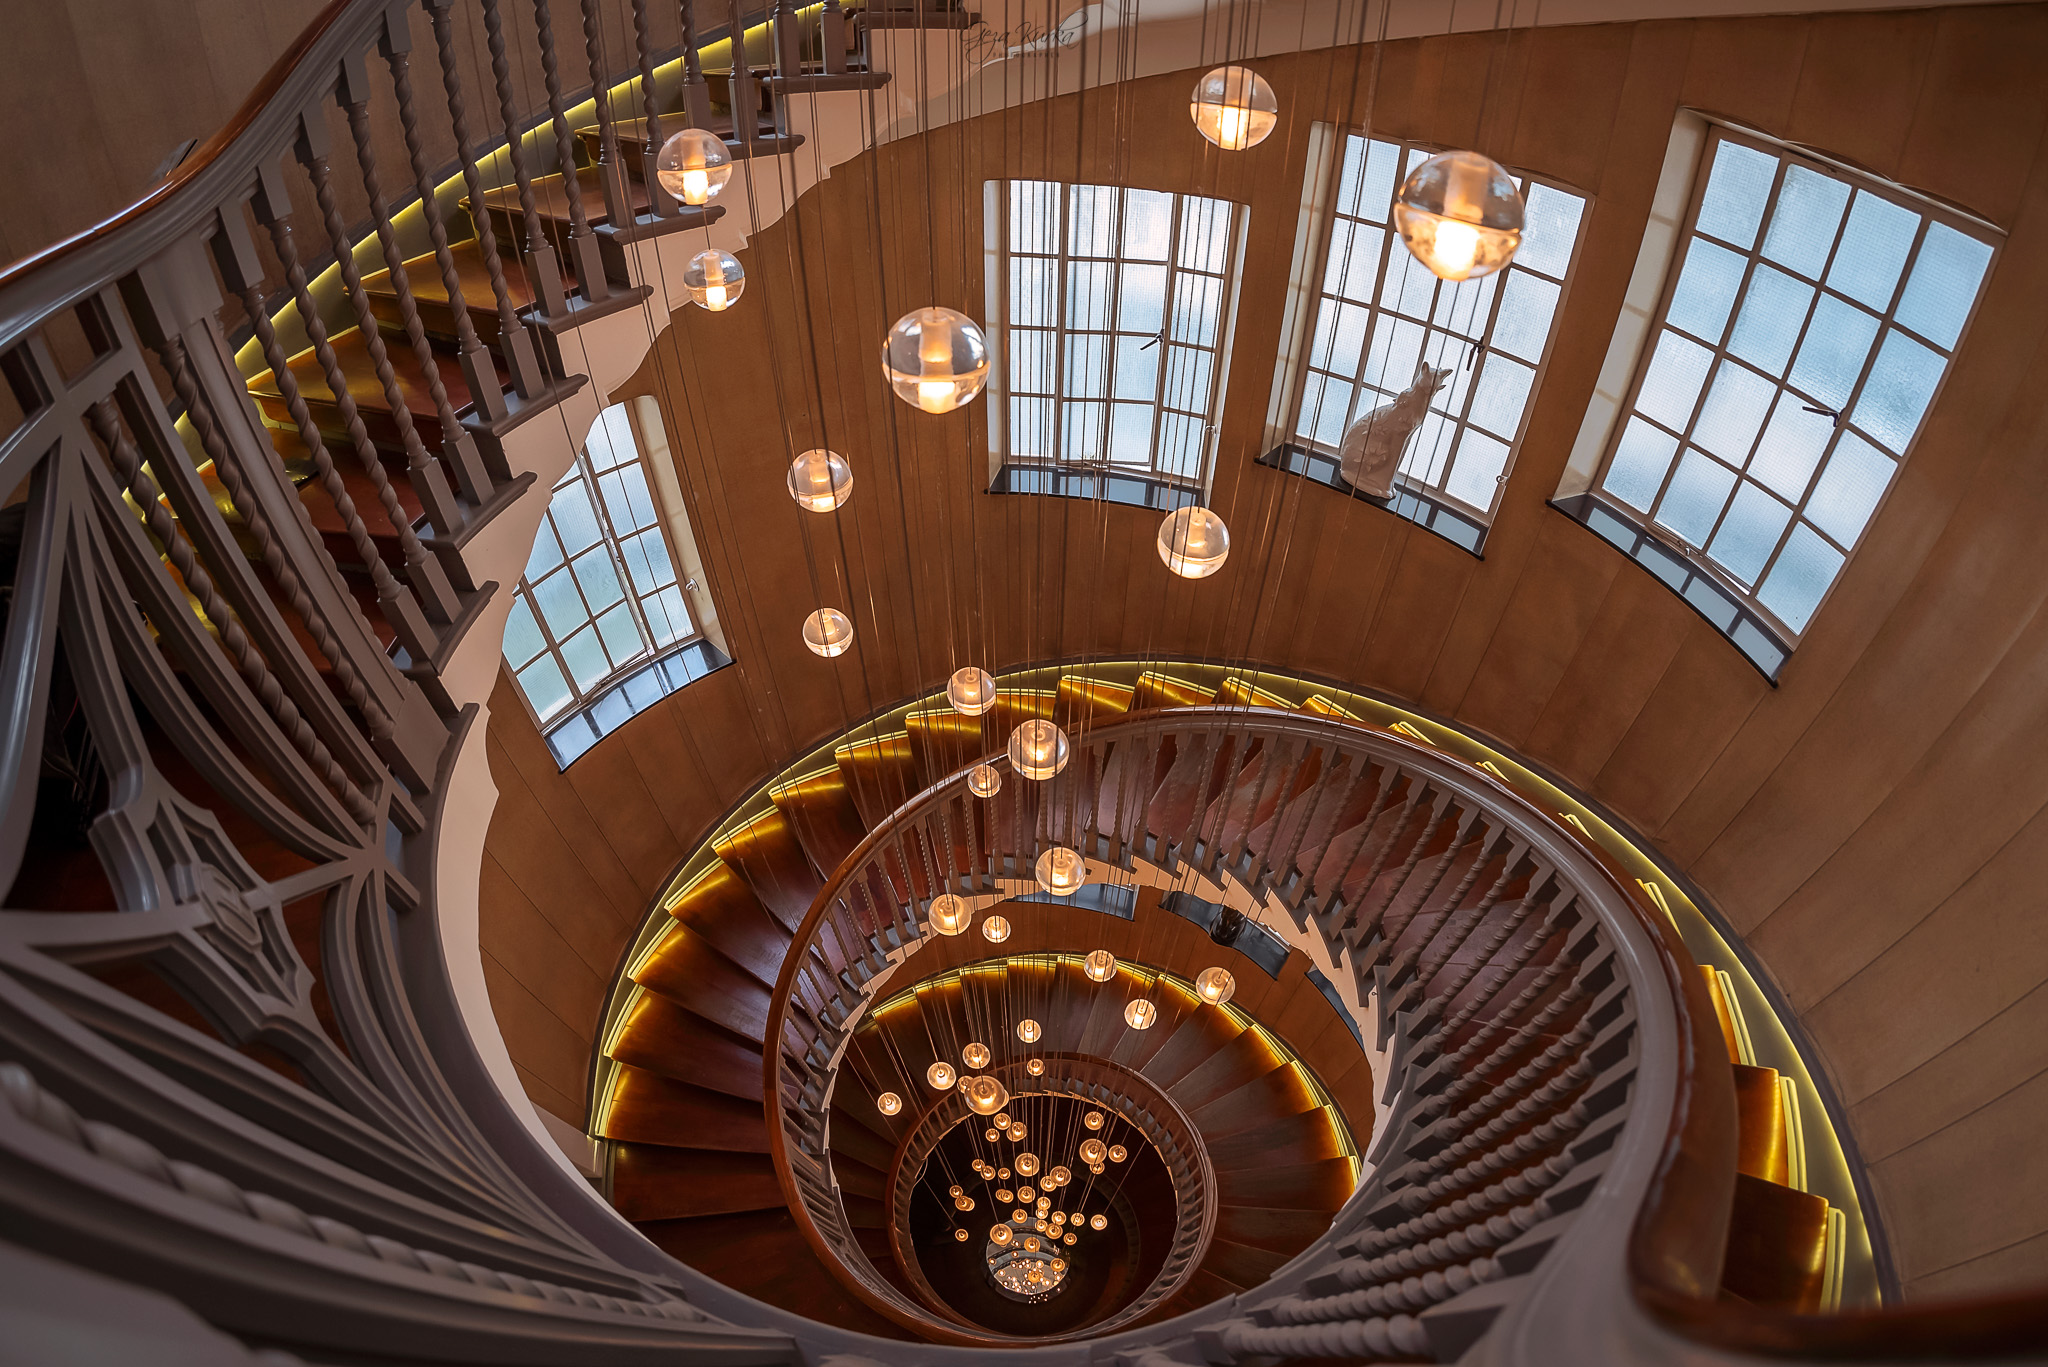 Spiral staircase in Heal & son store., United Kingdom